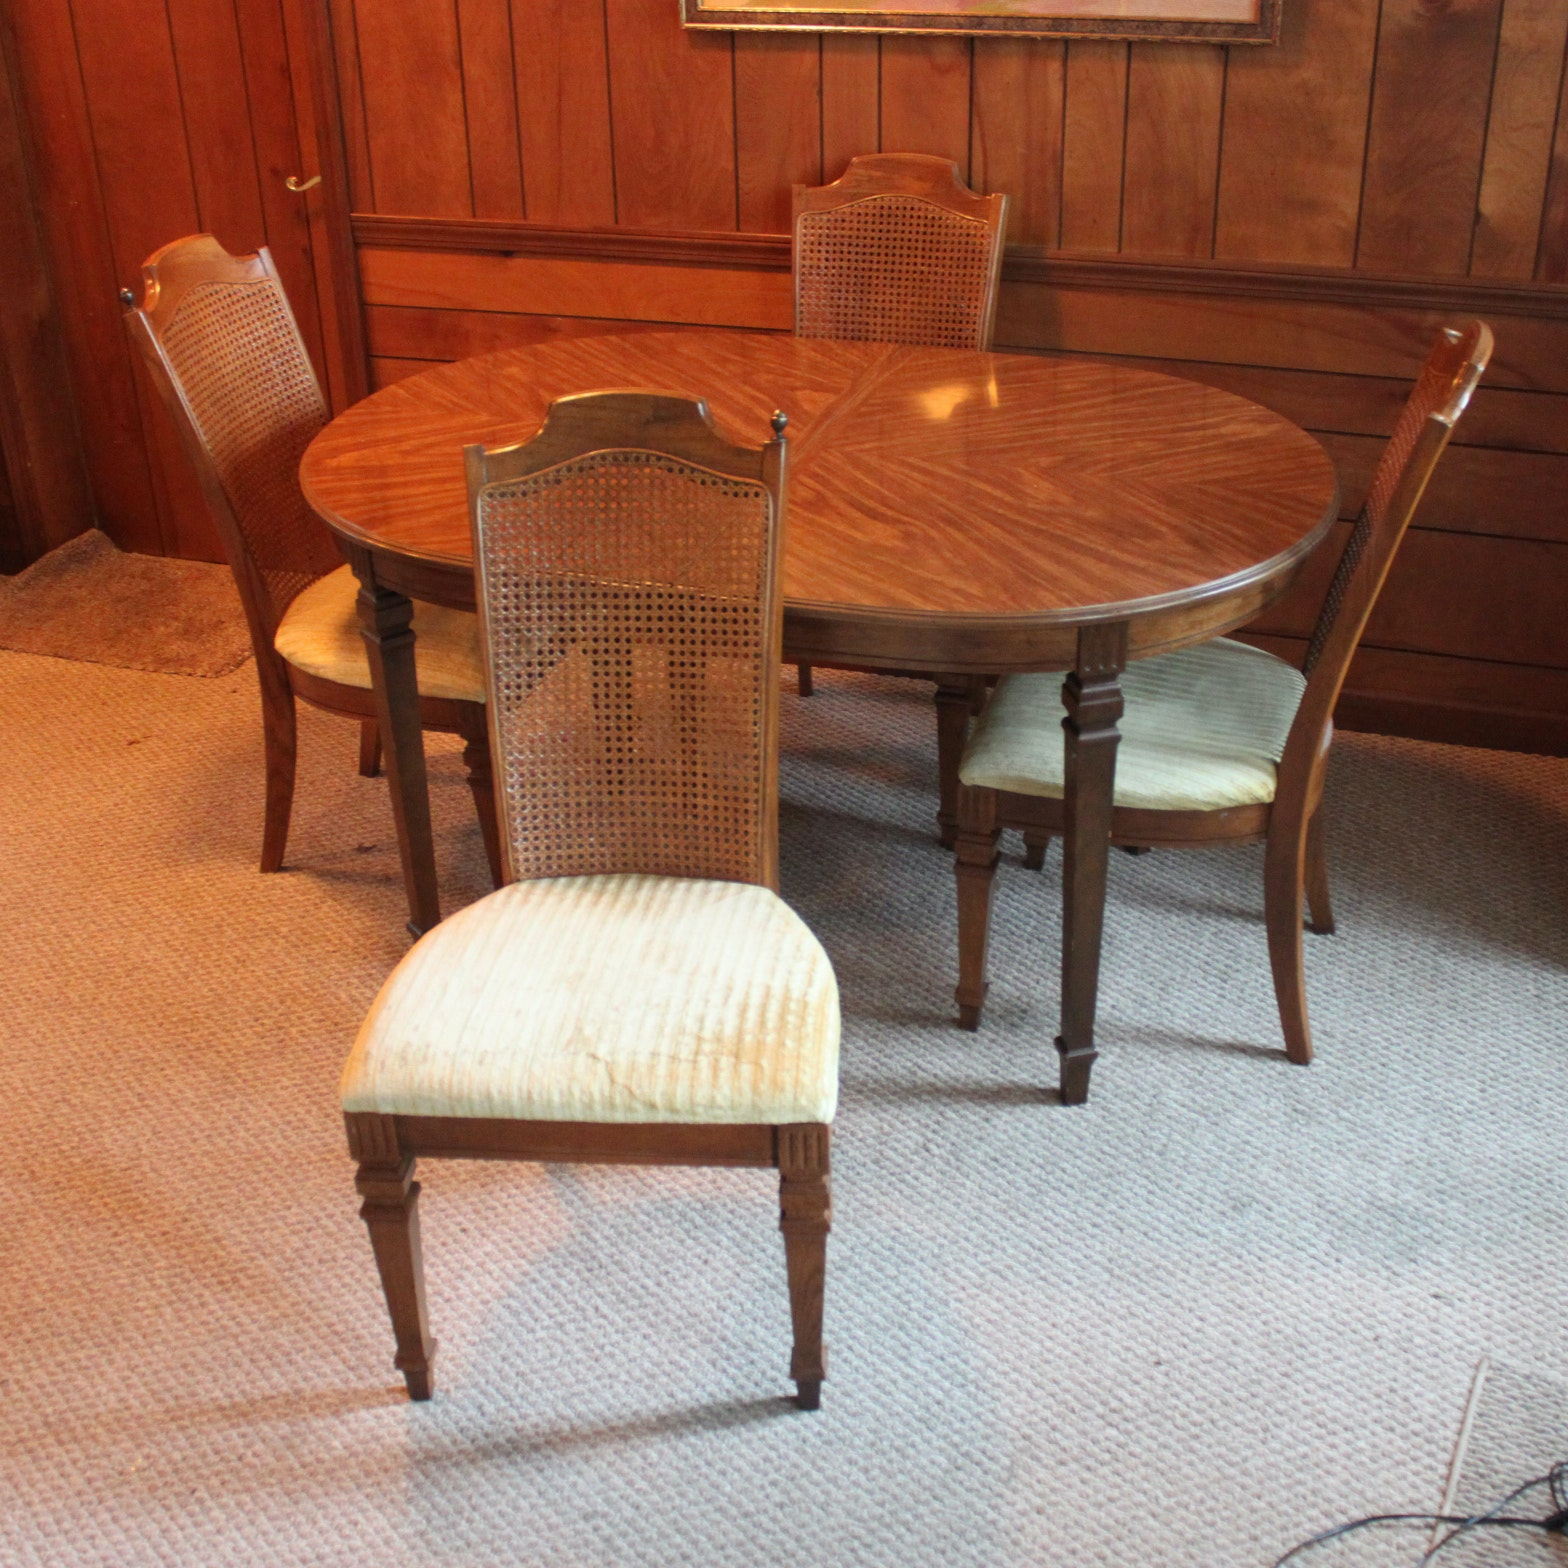 Vintage Broyhill Federal Style Dining Table And Chairs ...